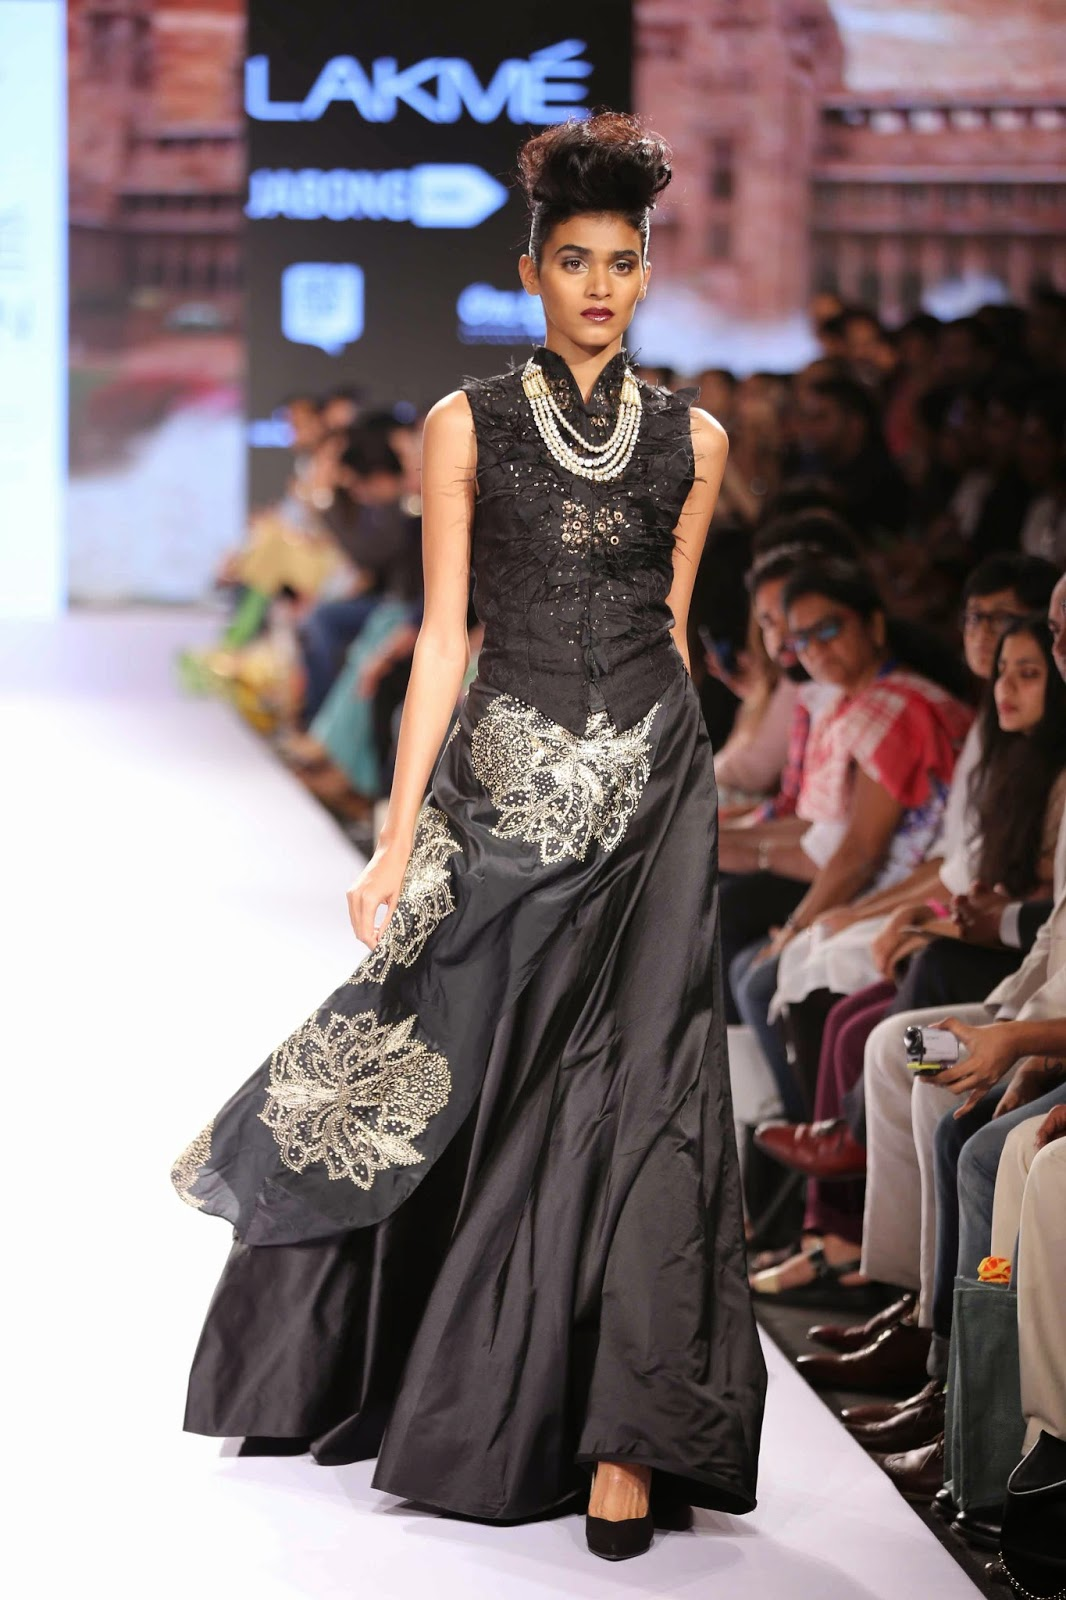 http://aquaintperspective.blogspot.in/, LIFW Day 2 ,Raghvendra Rathore